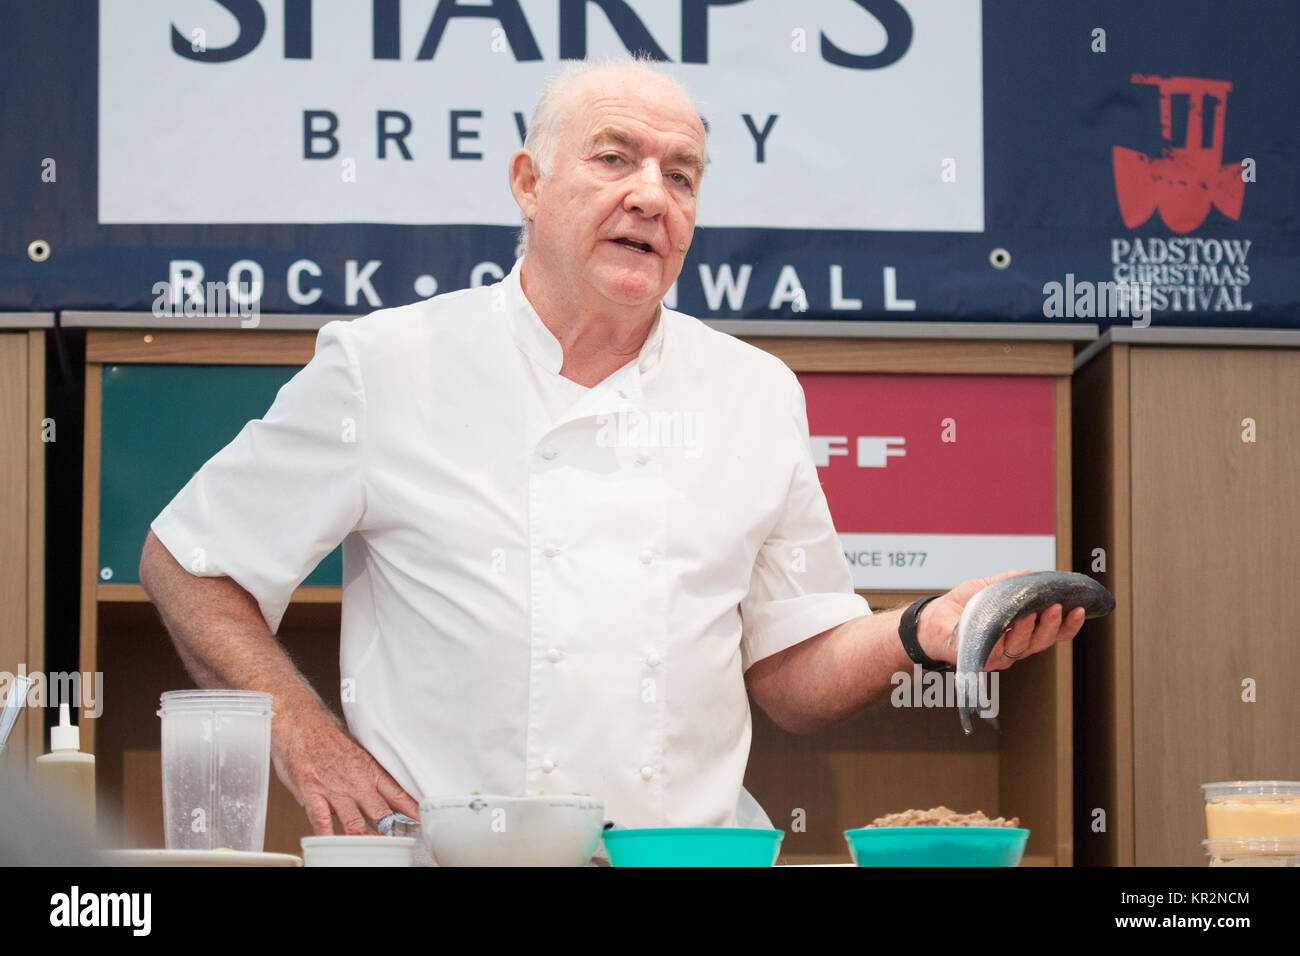 Rick Stein cooking at the Padstow Christmas Festival - Stock Image